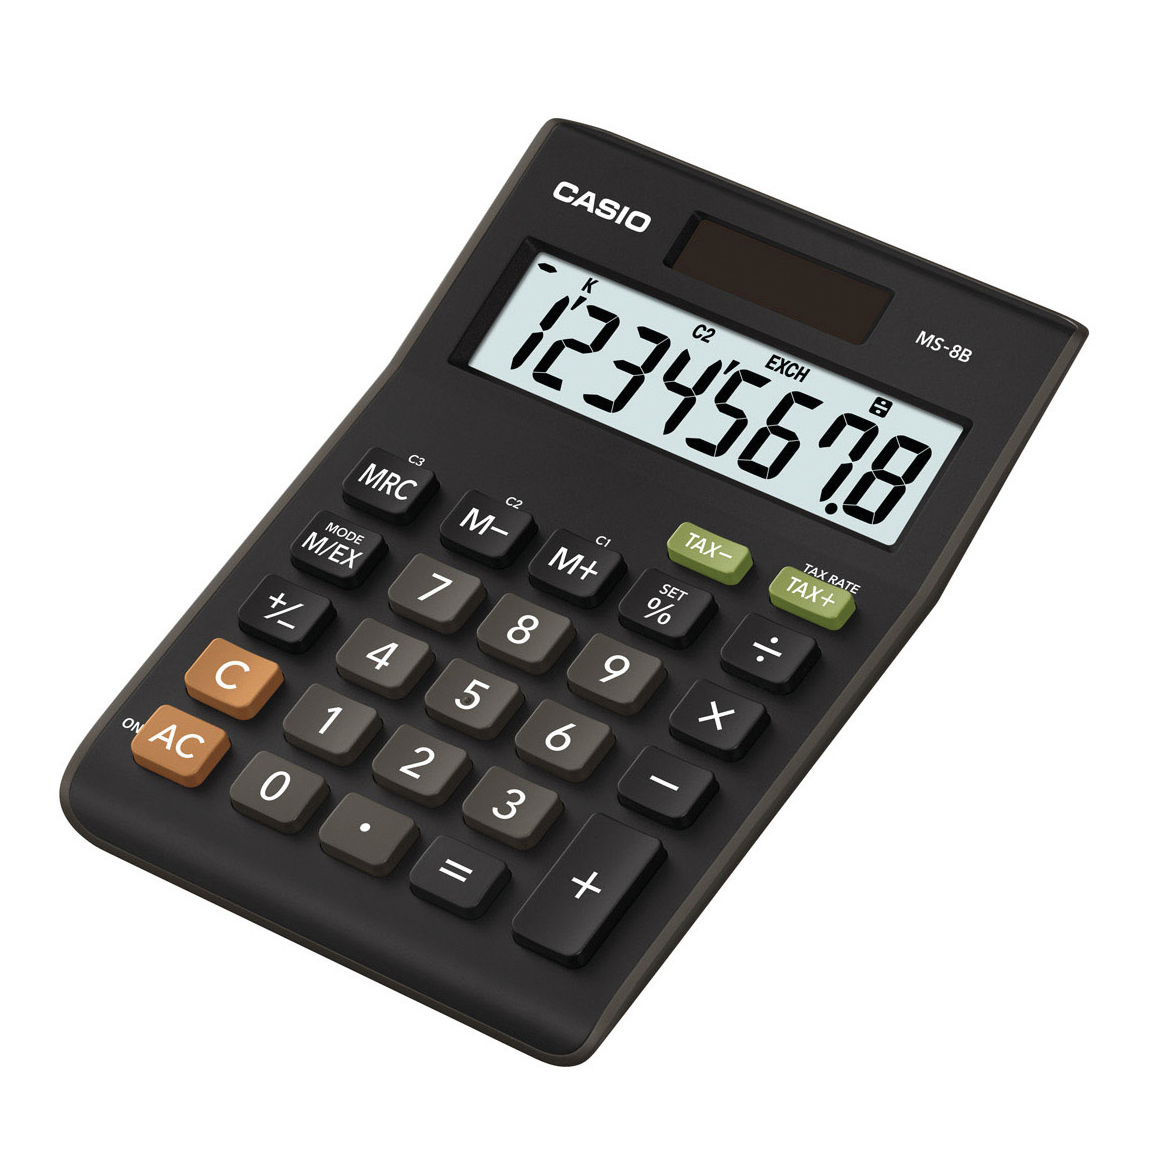 Calculators Casio Desktop Calculator 8 Digit 3 Key Memory Battery/Solar Power 103x28.8x147mm Black Ref MS-8TV/MS-8B